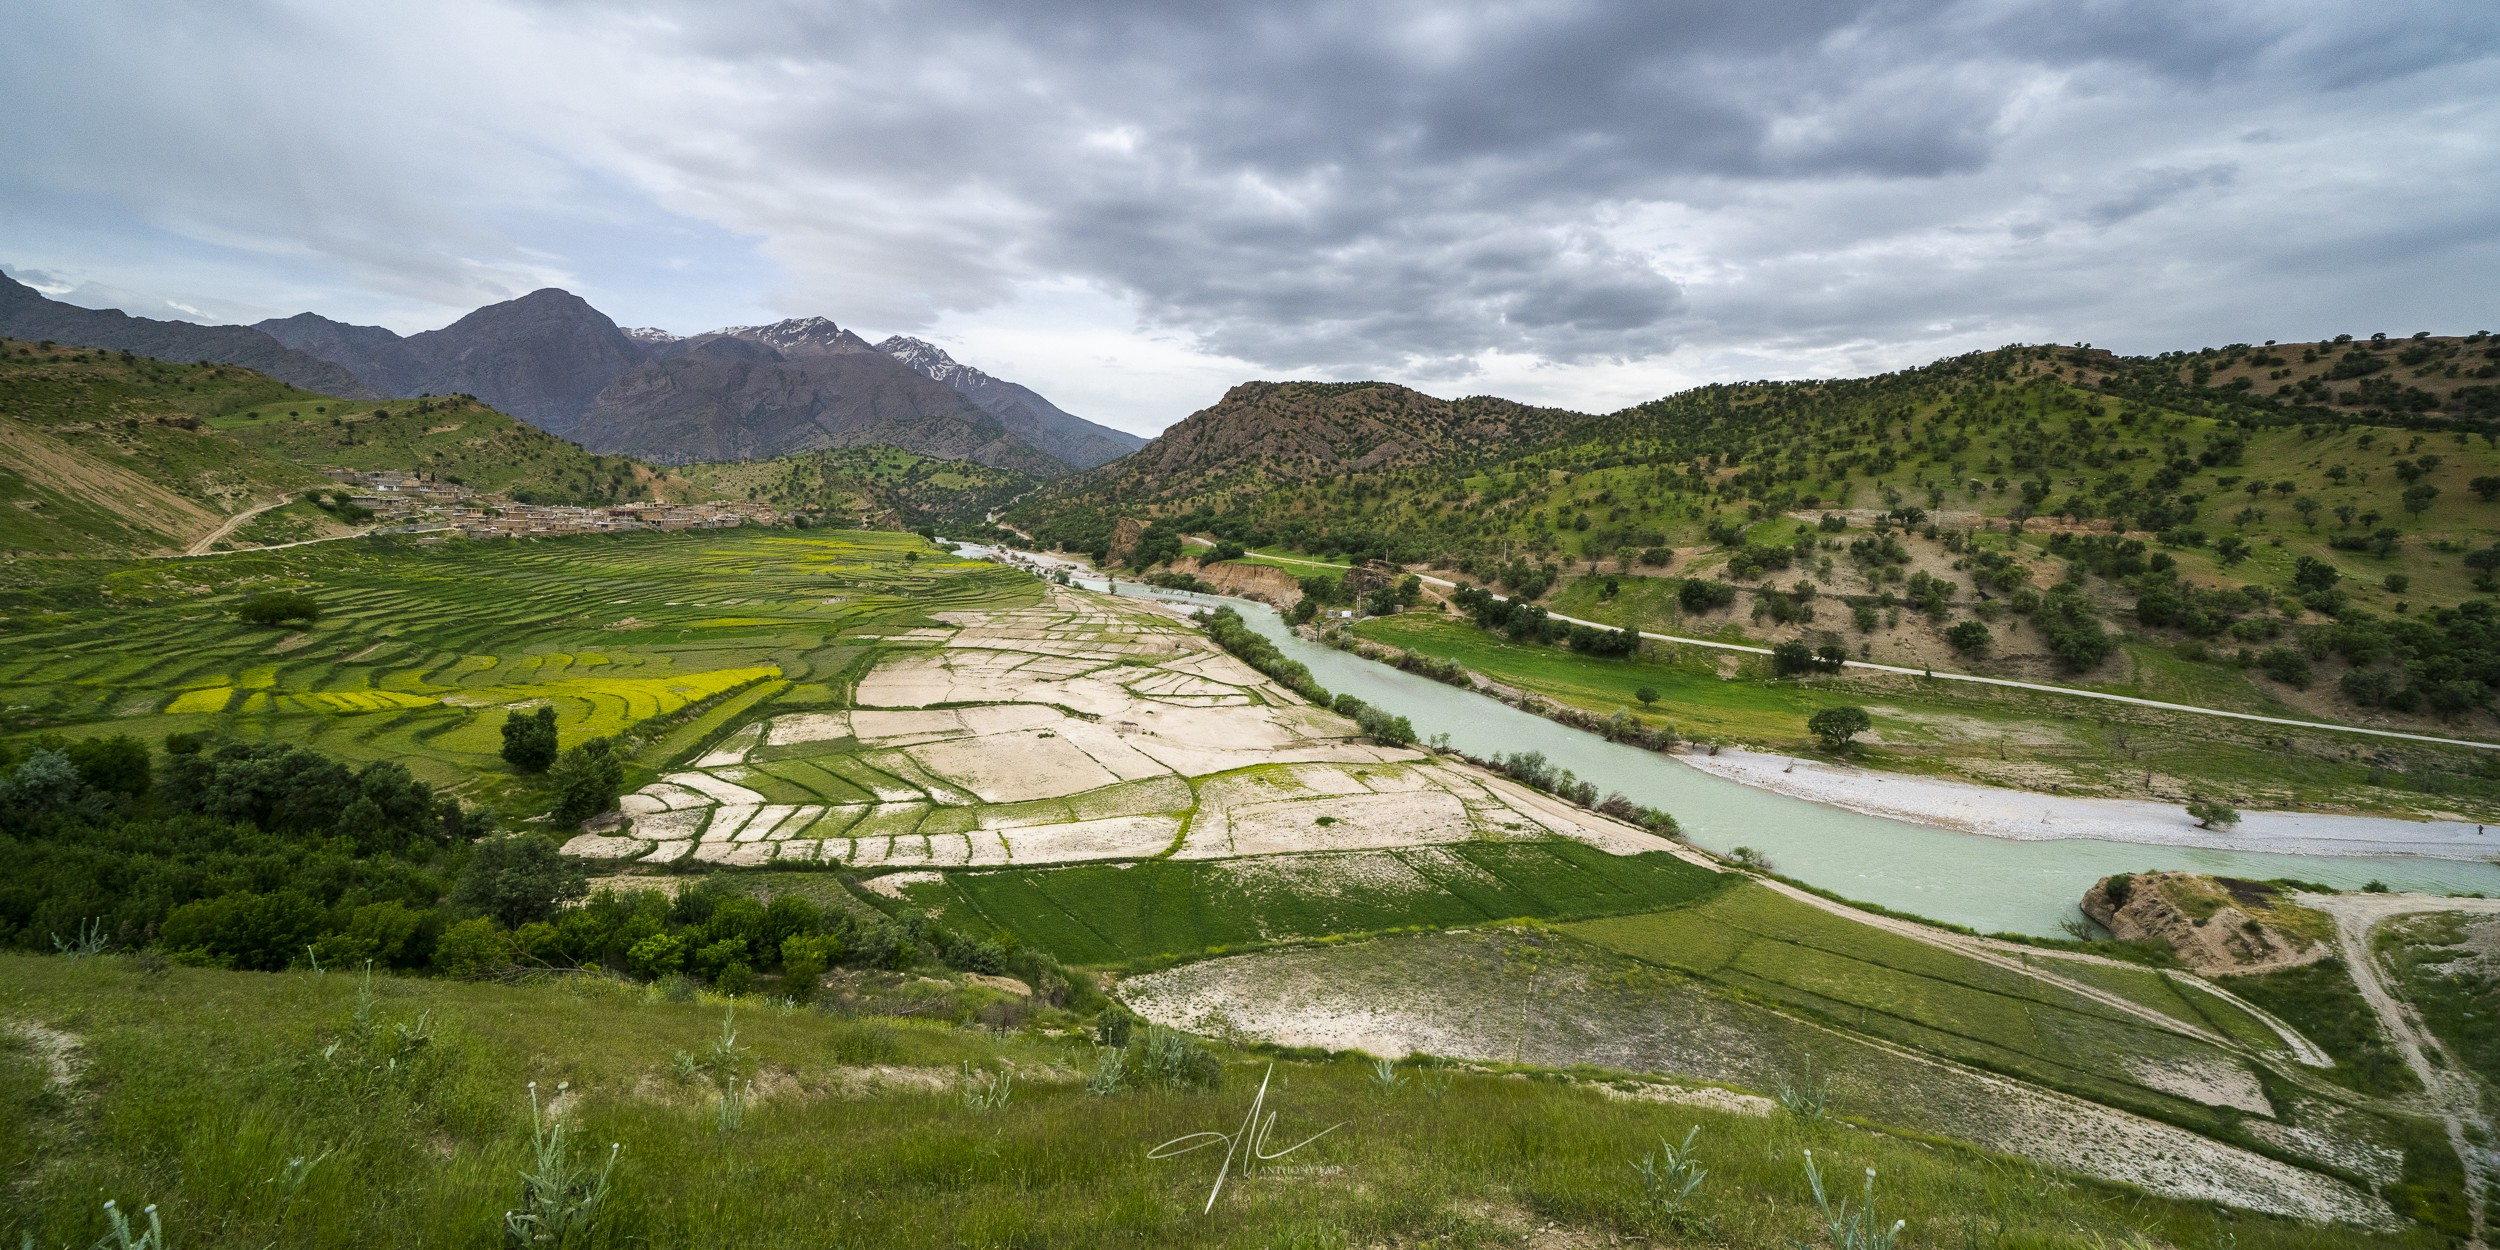 A vast valley of local settlement, terraced rice fields, roaming river, and looming sky.